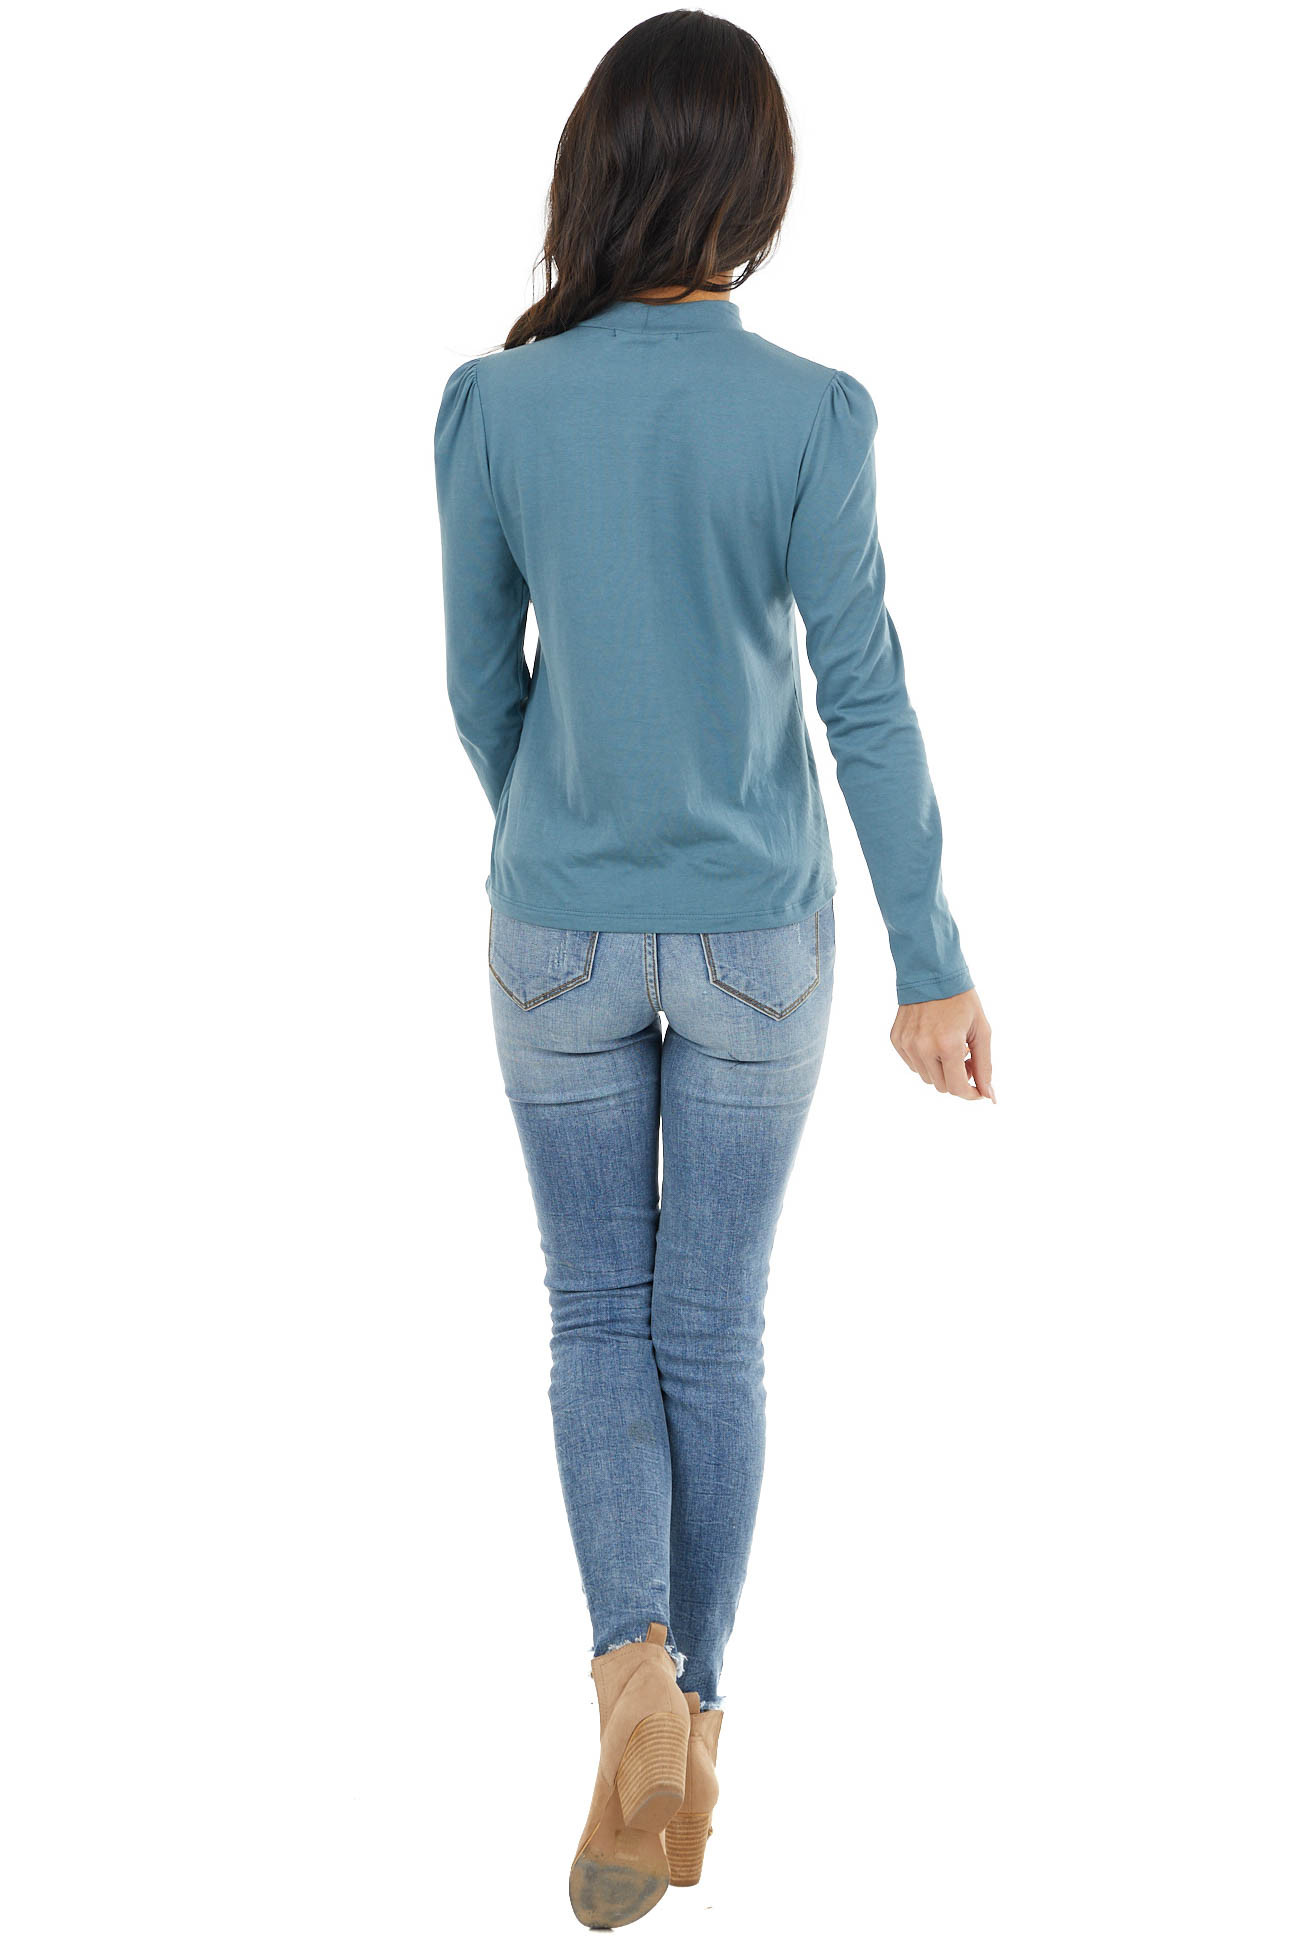 Teal Mock Neck Top with Long Sleeves and Puffy Shoulders